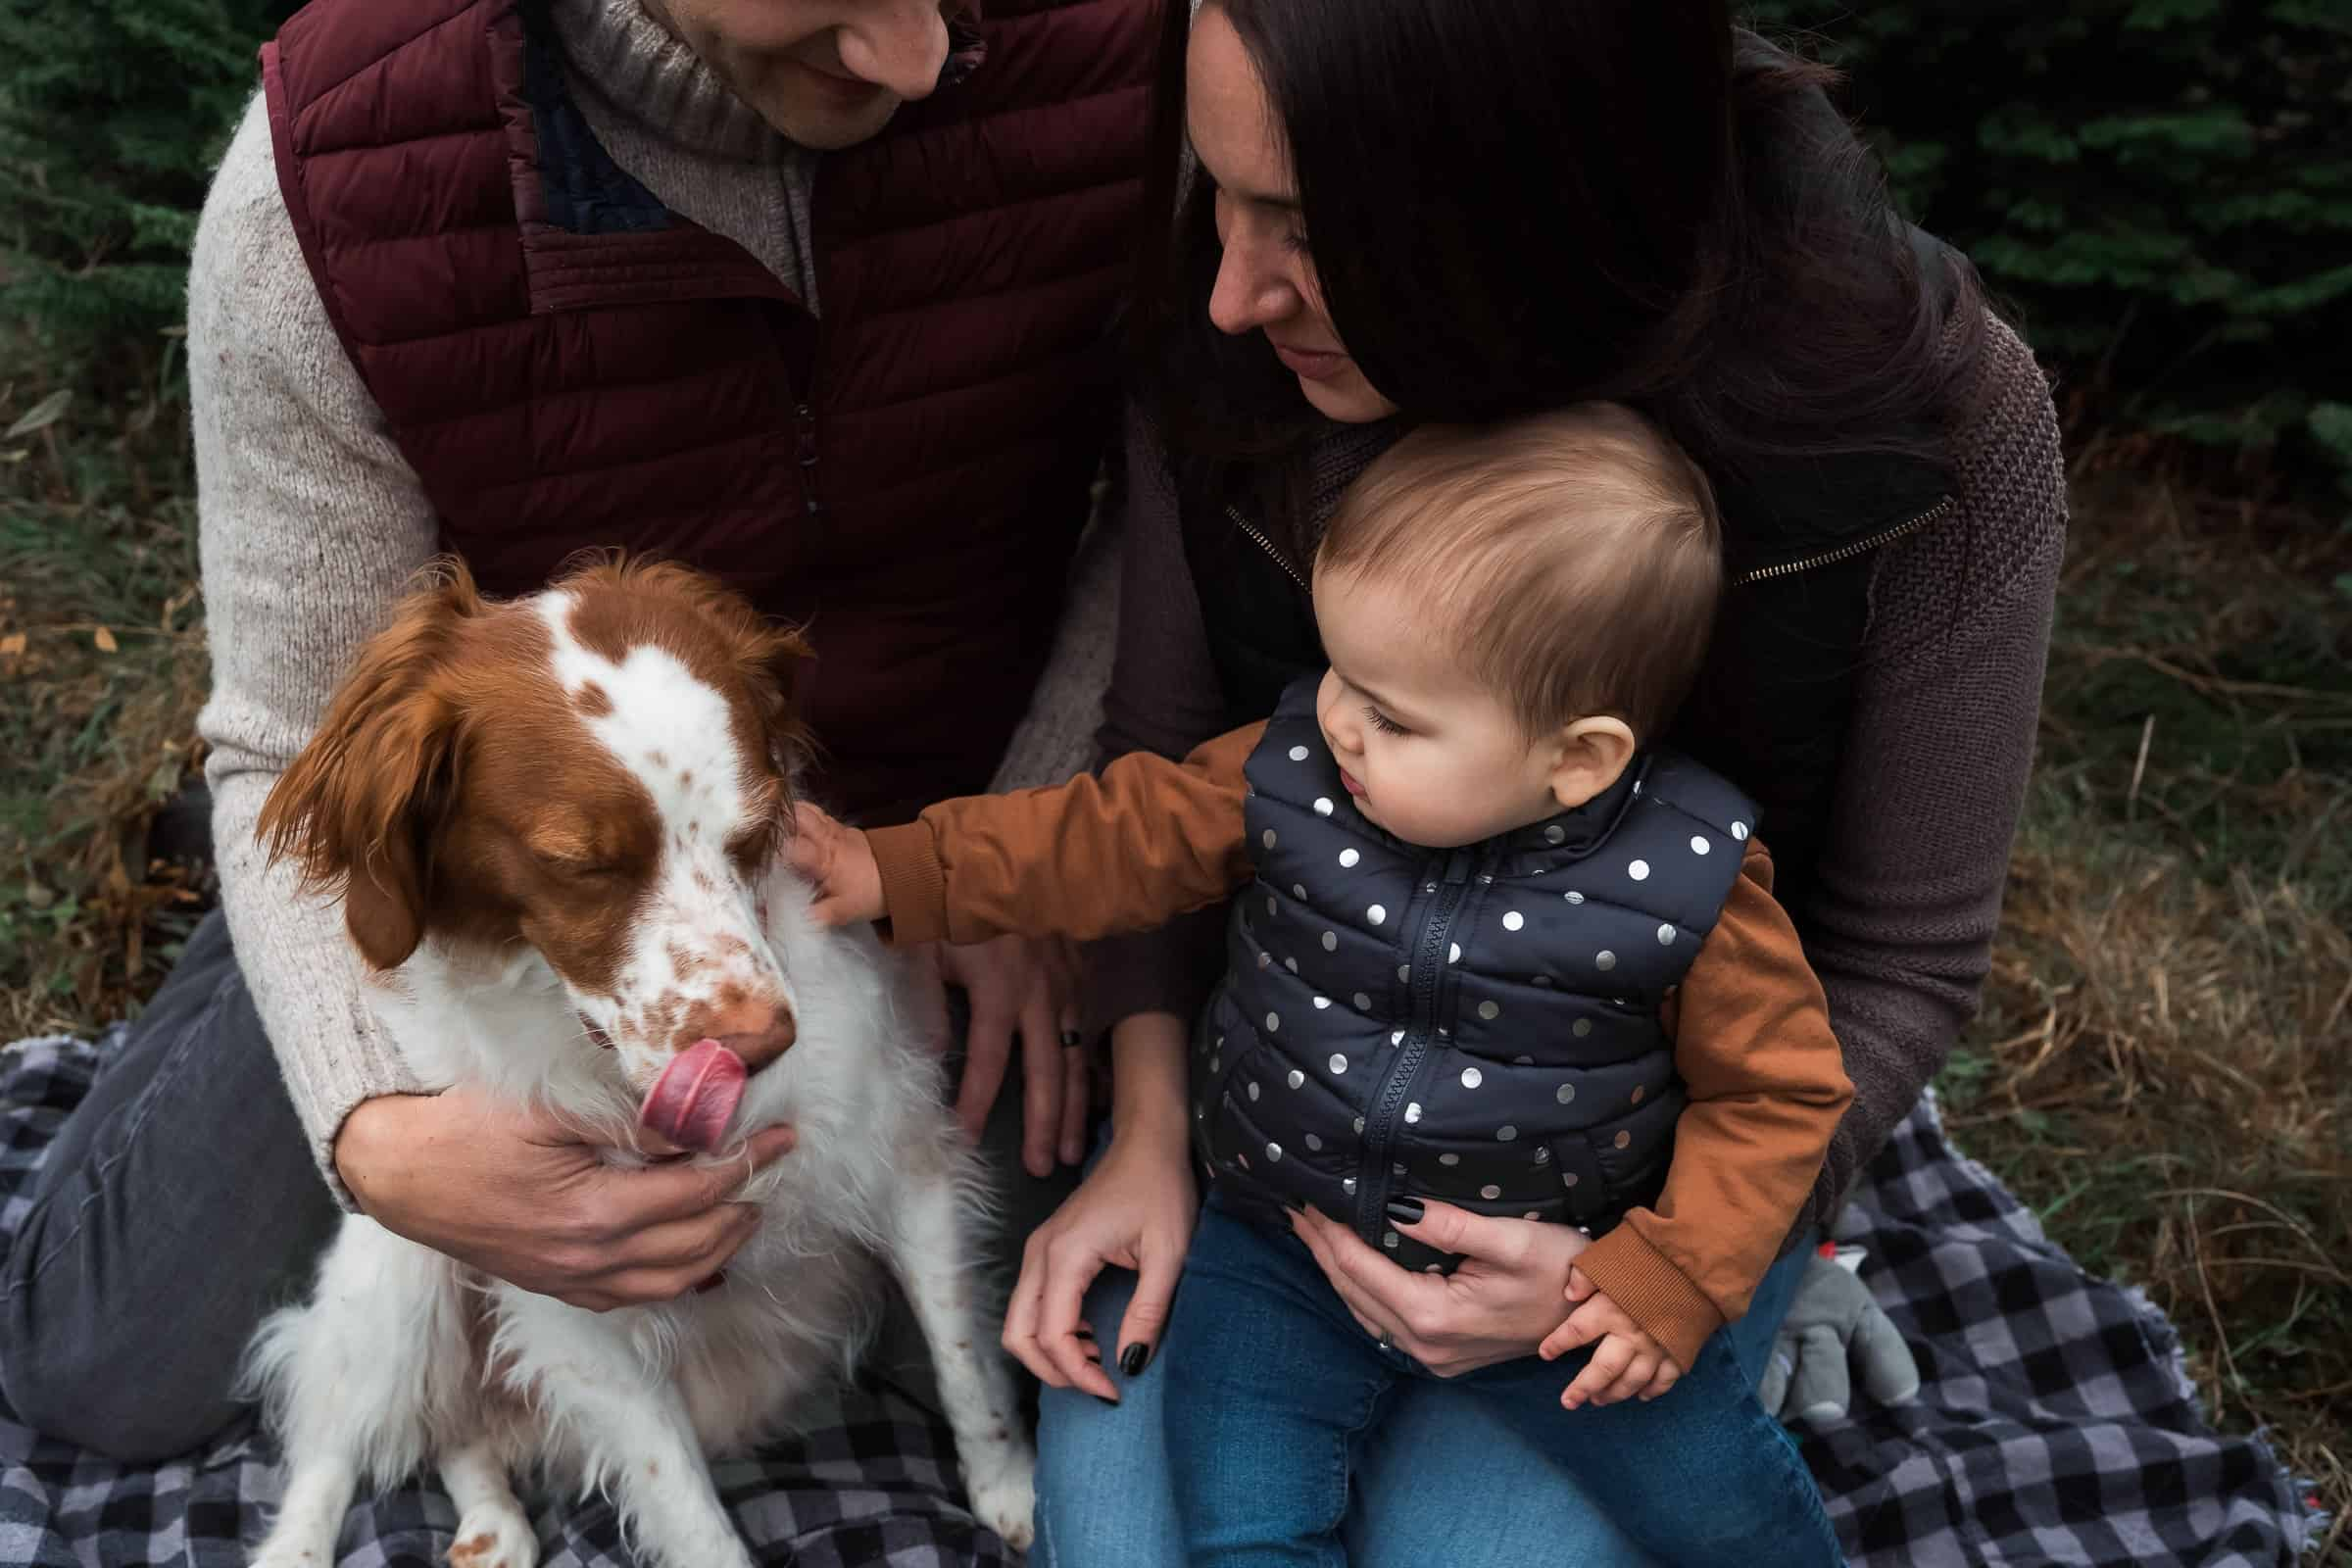 baby petting dog in parents' laps